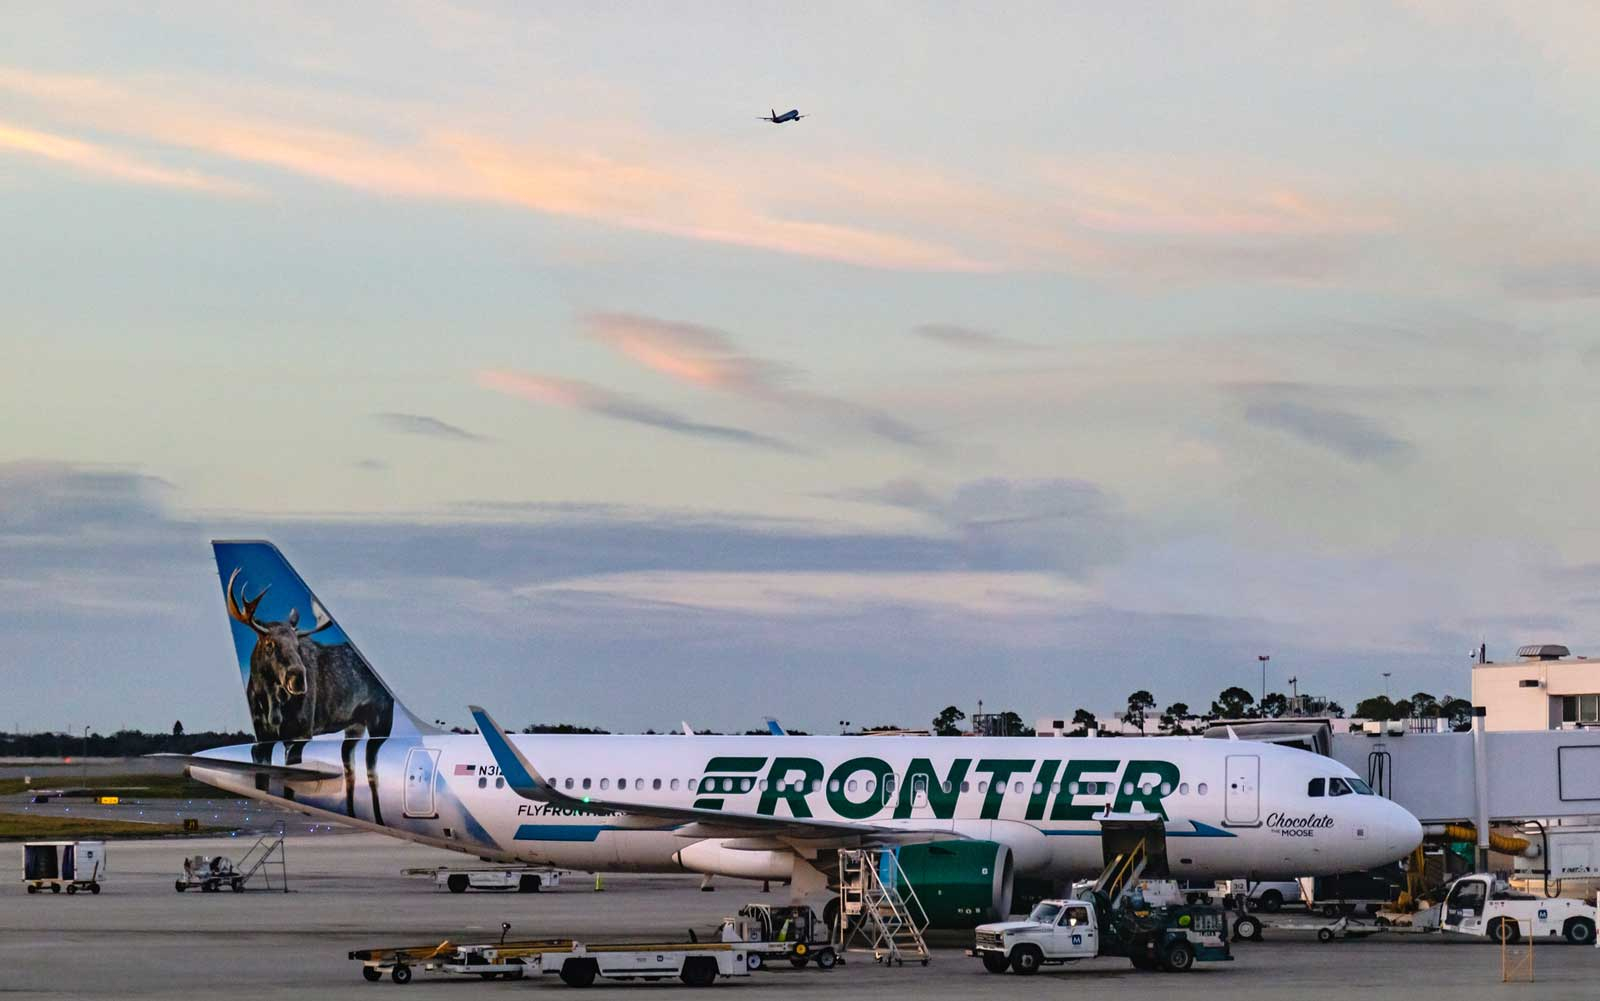 Frontier Airlines Kids Fly Free Dates 2019 | Travel + Leisure With Regard To Frontier Airlines Monthly Calendar